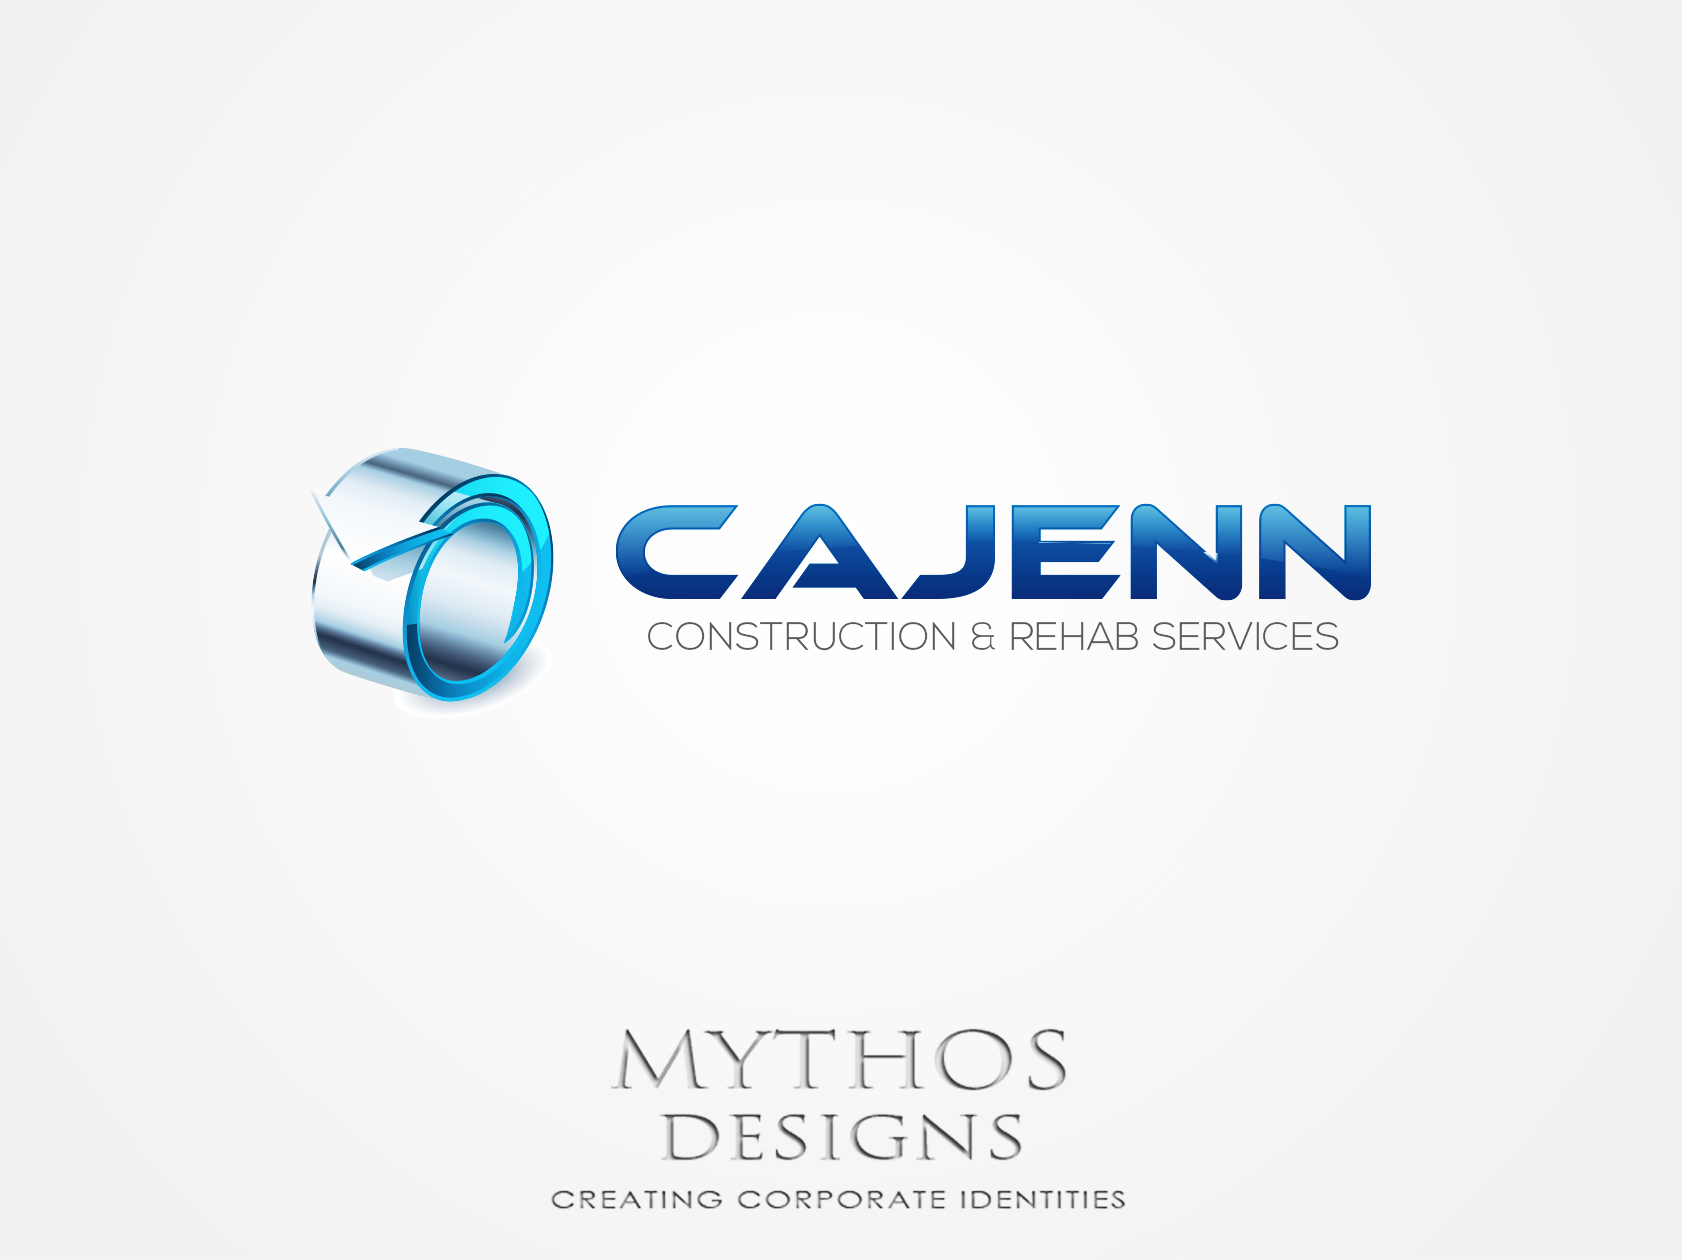 Logo Design by Mythos Designs - Entry No. 312 in the Logo Design Contest New Logo Design for CaJenn Construction & Rehab Services.